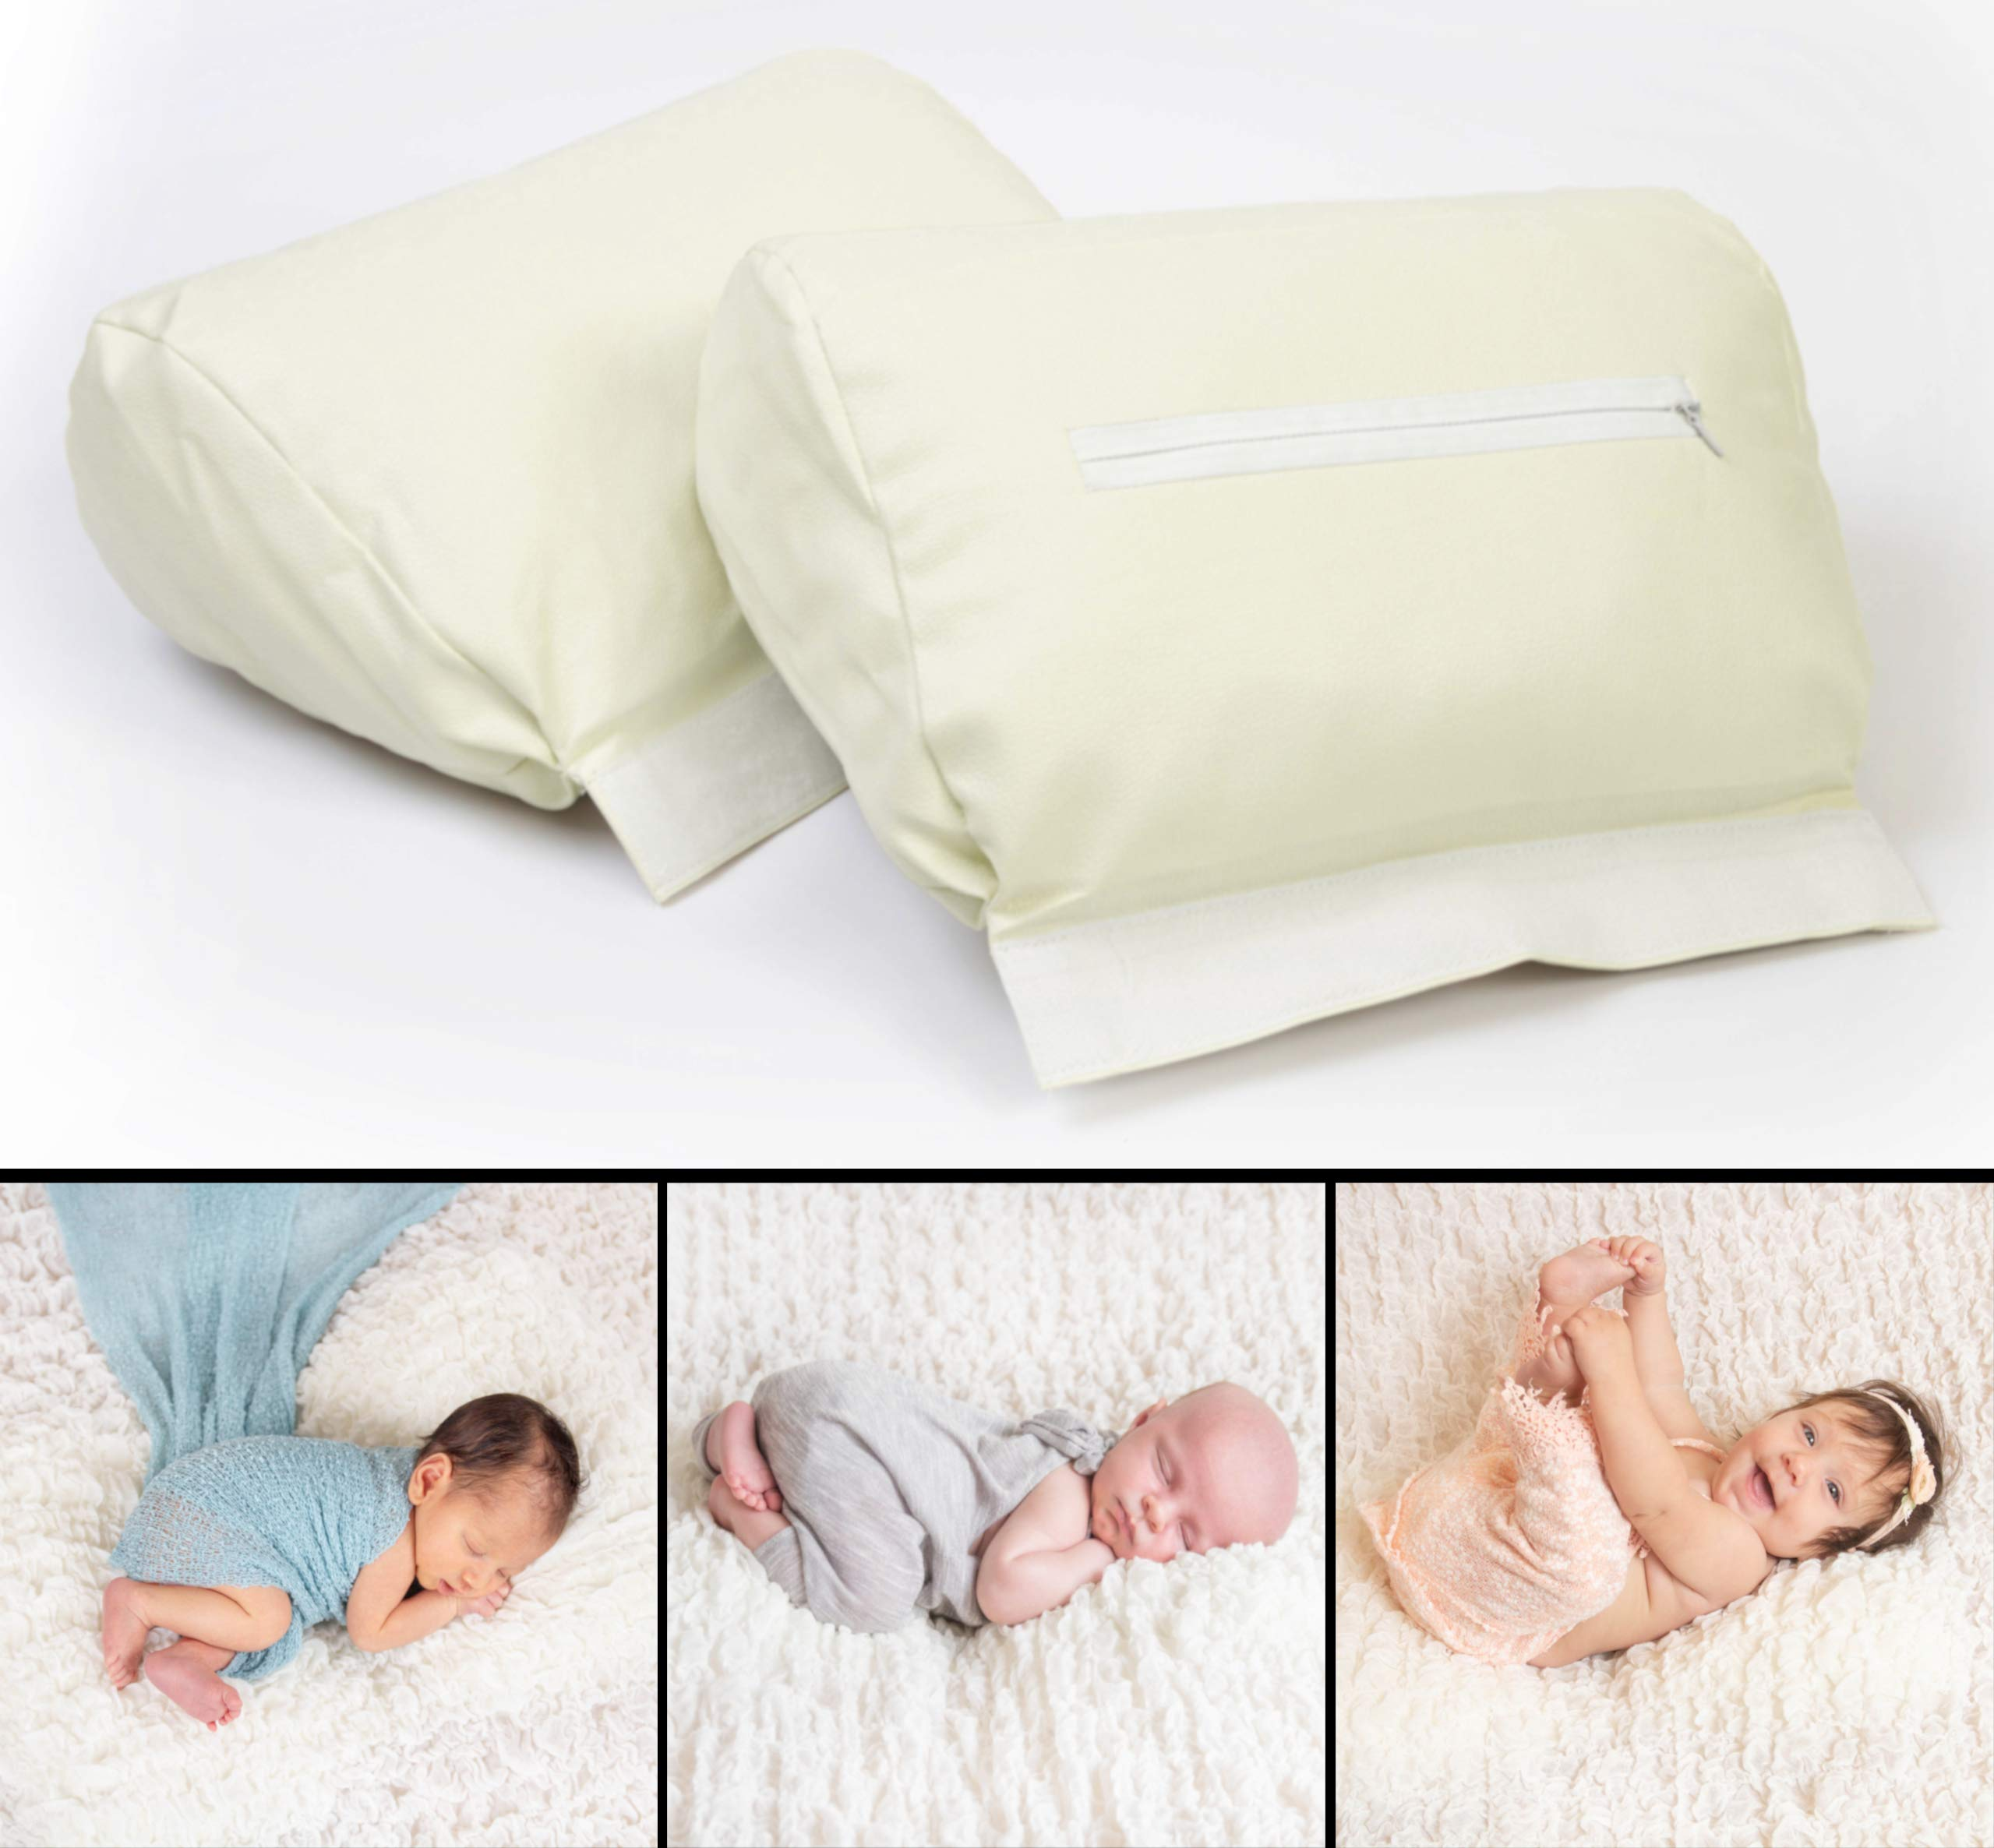 Newborn Photography Butterfly Posing Pillow - 2 Piece Detachable Baby Posing Props, New & Improved With 25% More Stuffing & Adjustable Fastening by The Adorable Teddy